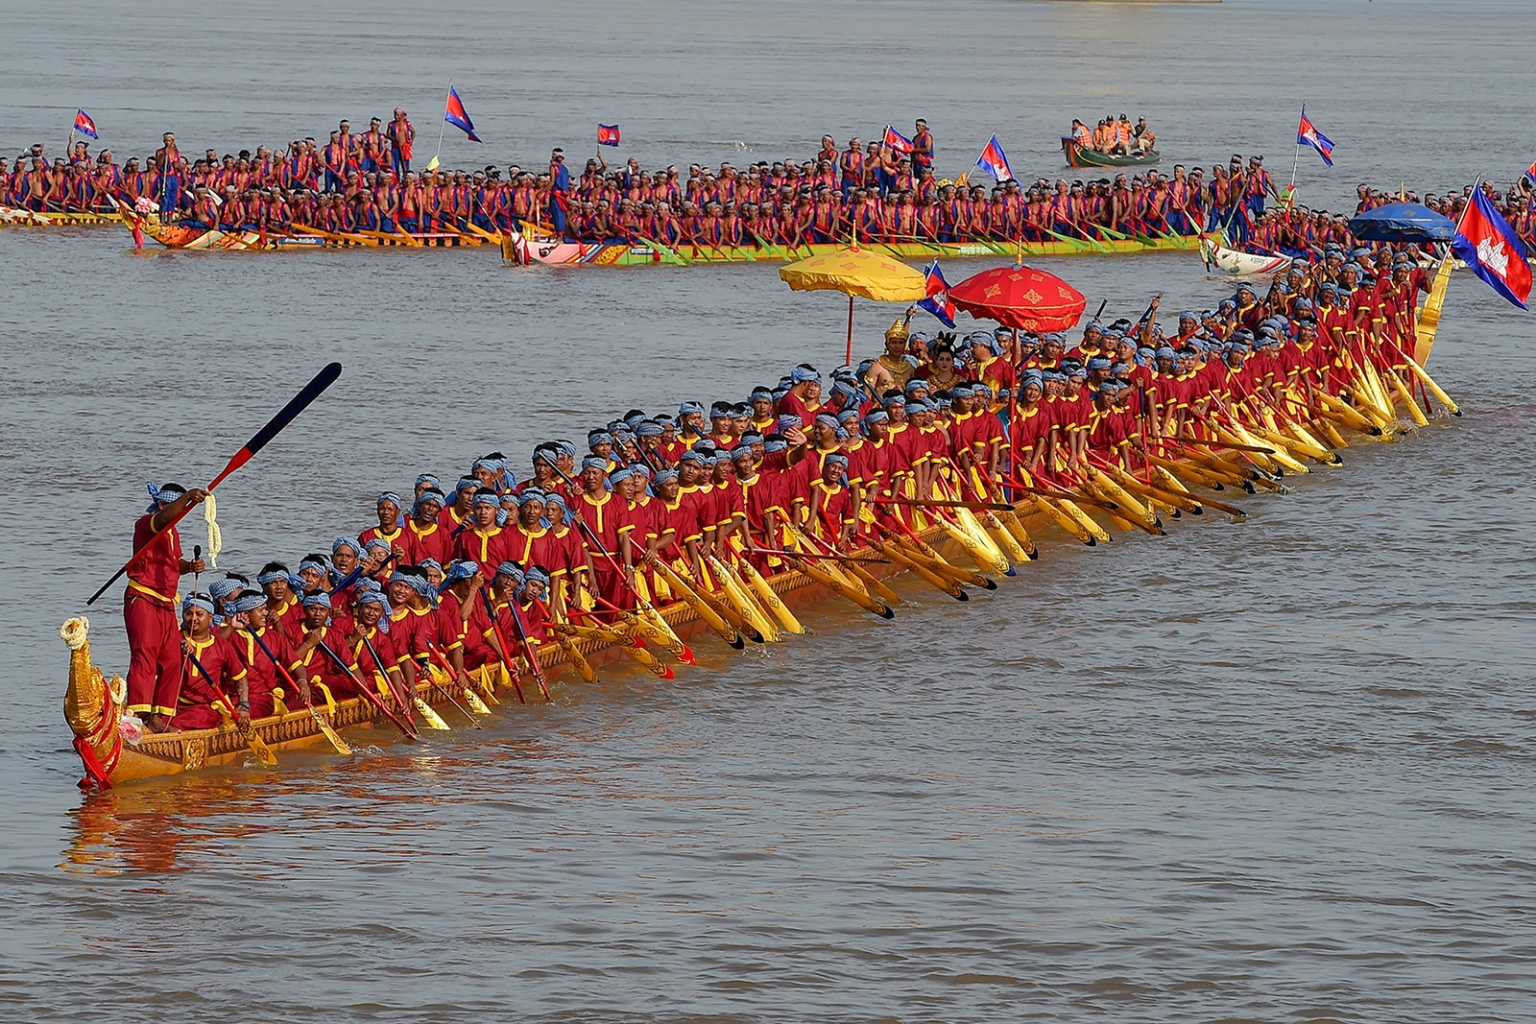 The world's longest dragon boat carrying 179 rowers sails along the Mekong river during a ceremony in Prey Veng province, Cambodia, on Nov. 12. TANG CHHIN SOTHY/AFP/Getty Images